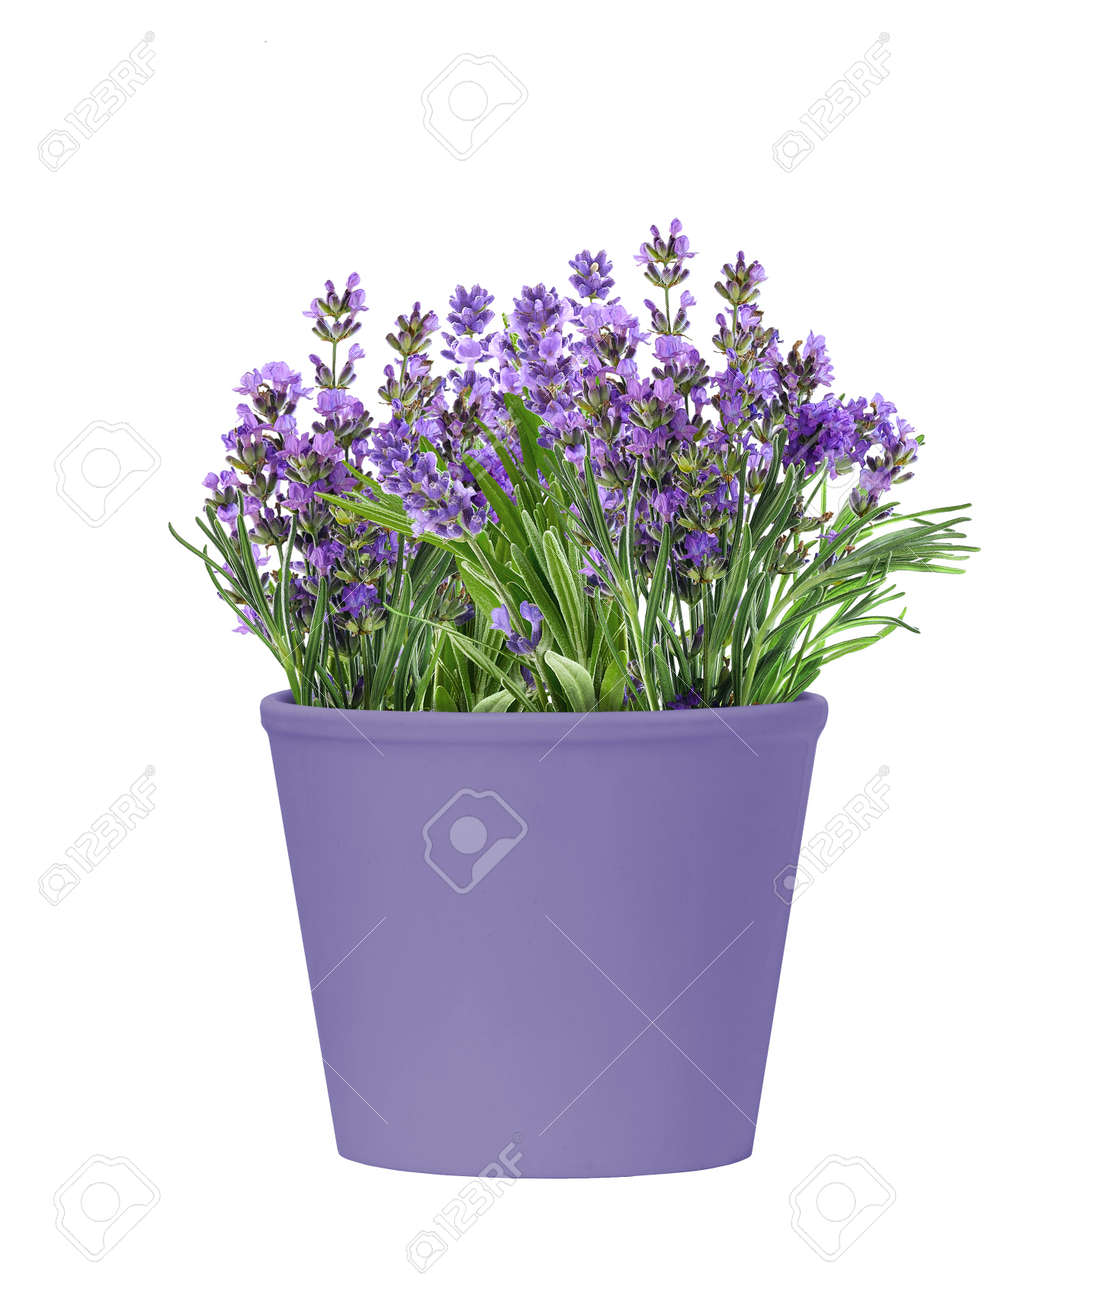 Pot of blooming lavender flowers isolated on white background - 172752947